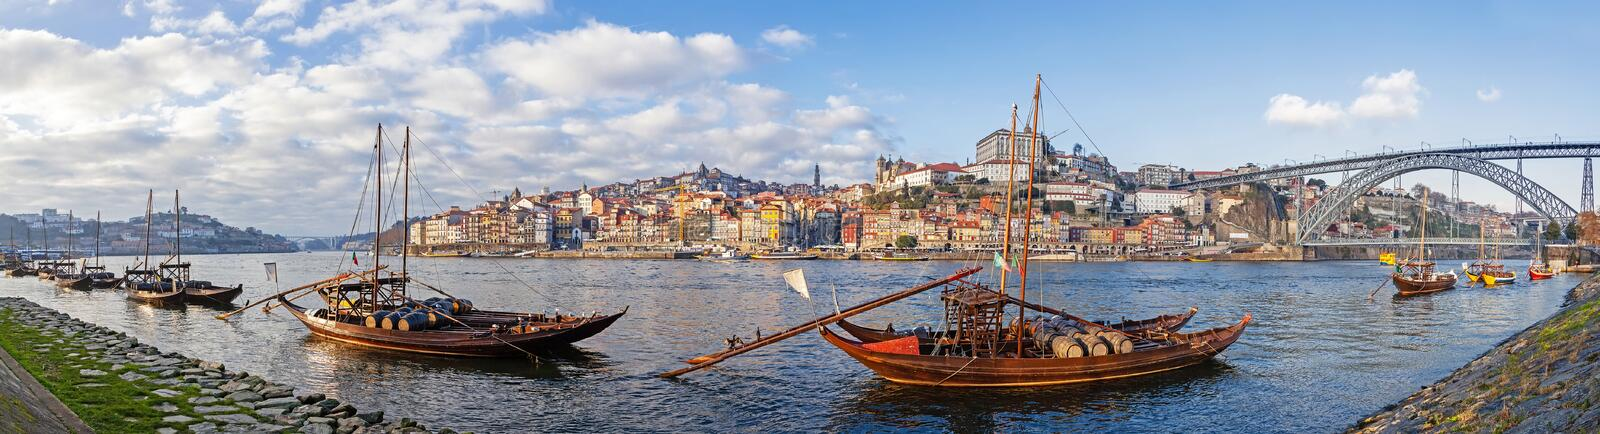 The iconic Rabelo Boats, the traditional Port Wine transports, with the Ribeira District and the Dom Luis I Bridge royalty free stock images